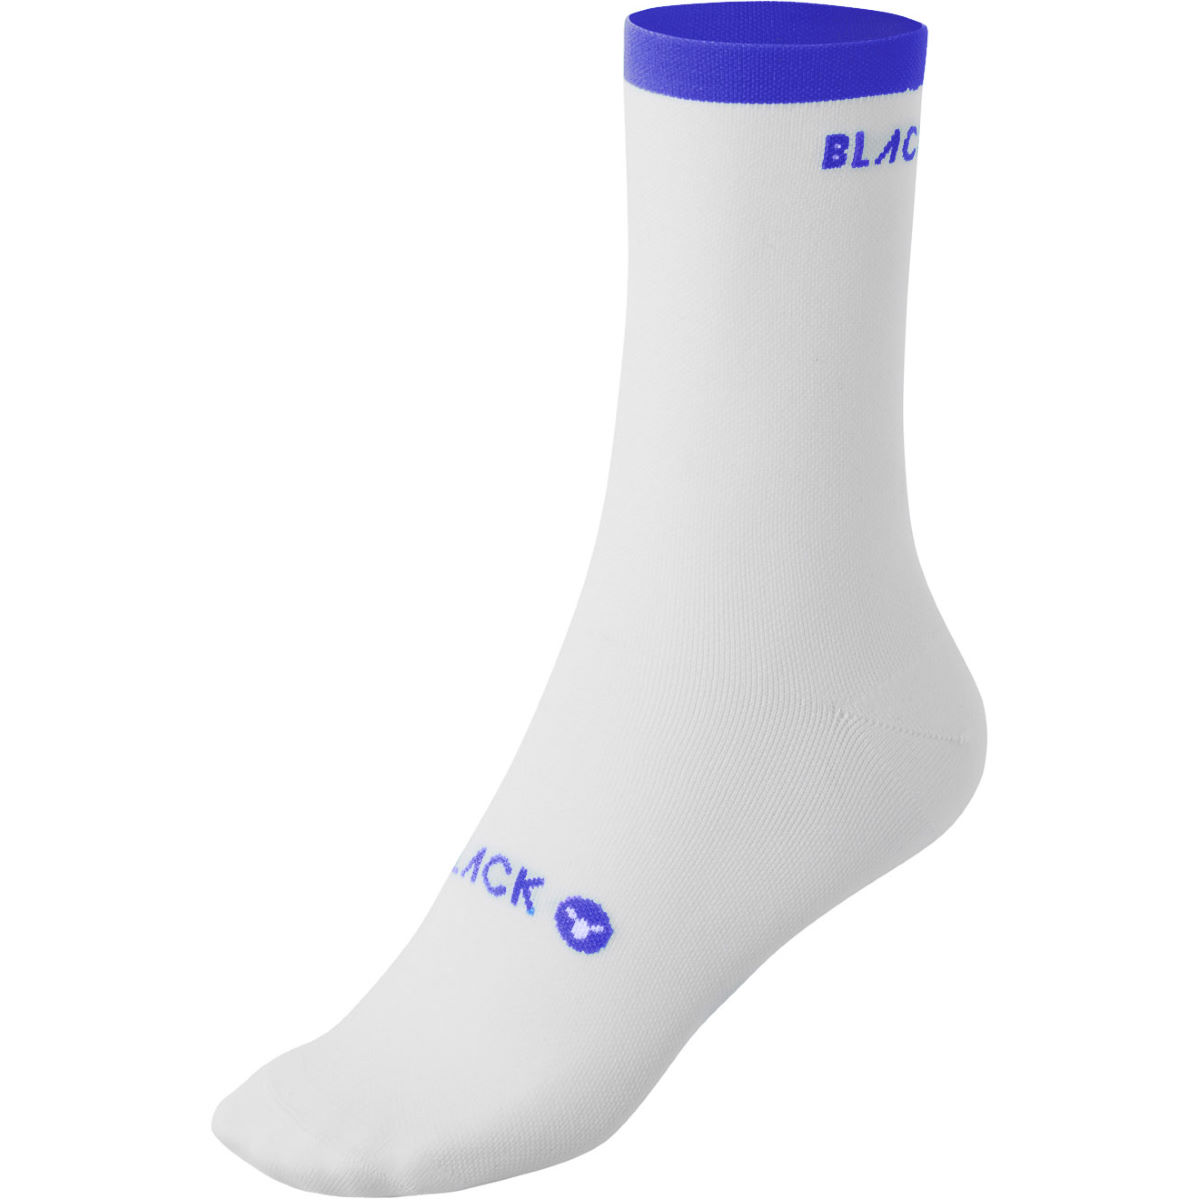 Black Sheep Cycling Perfect Crew Blue Stripe Cycling Socks - Xs Blue